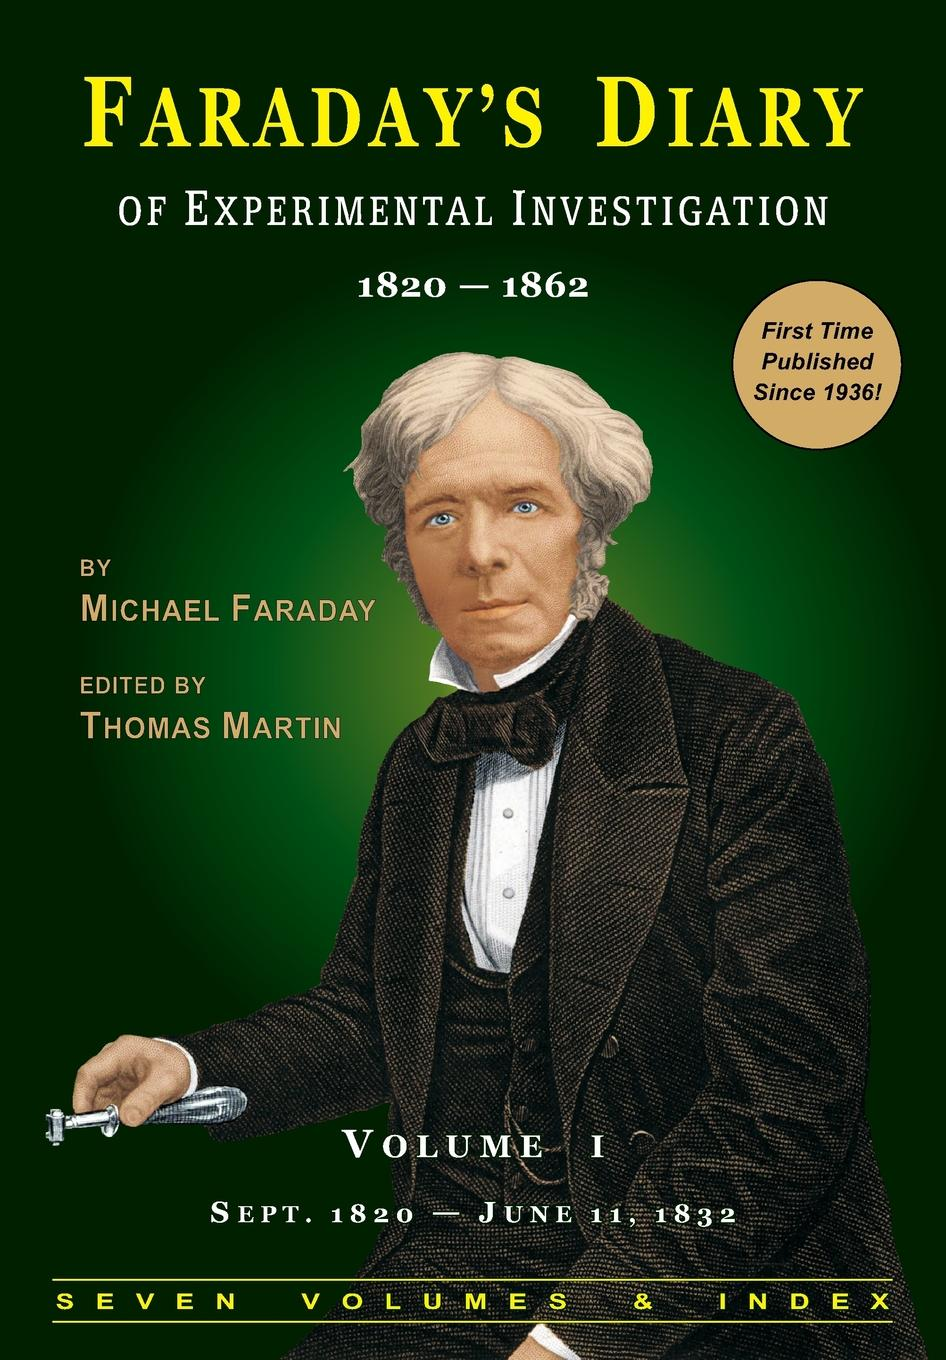 Michael Faraday F Diary of Experimental Investigation - 2nd edition, Vol. 1